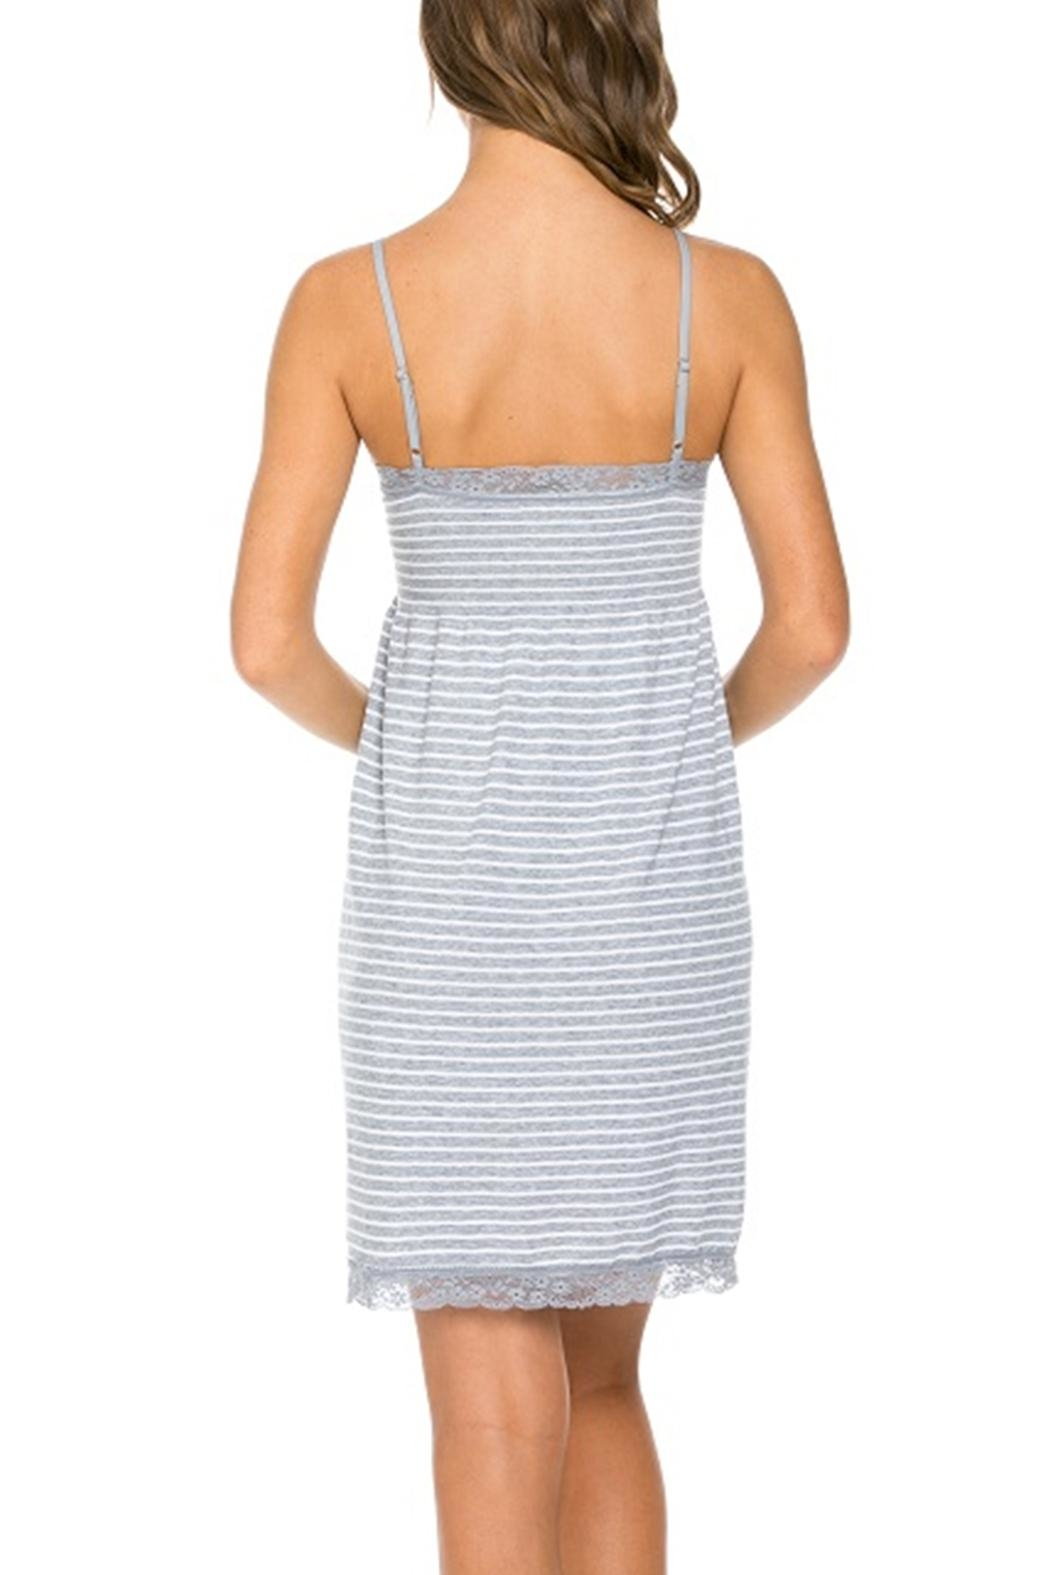 Marilyn Monroe Intimates Stretchy Grey-Stripe Nightgown - Side Cropped Image